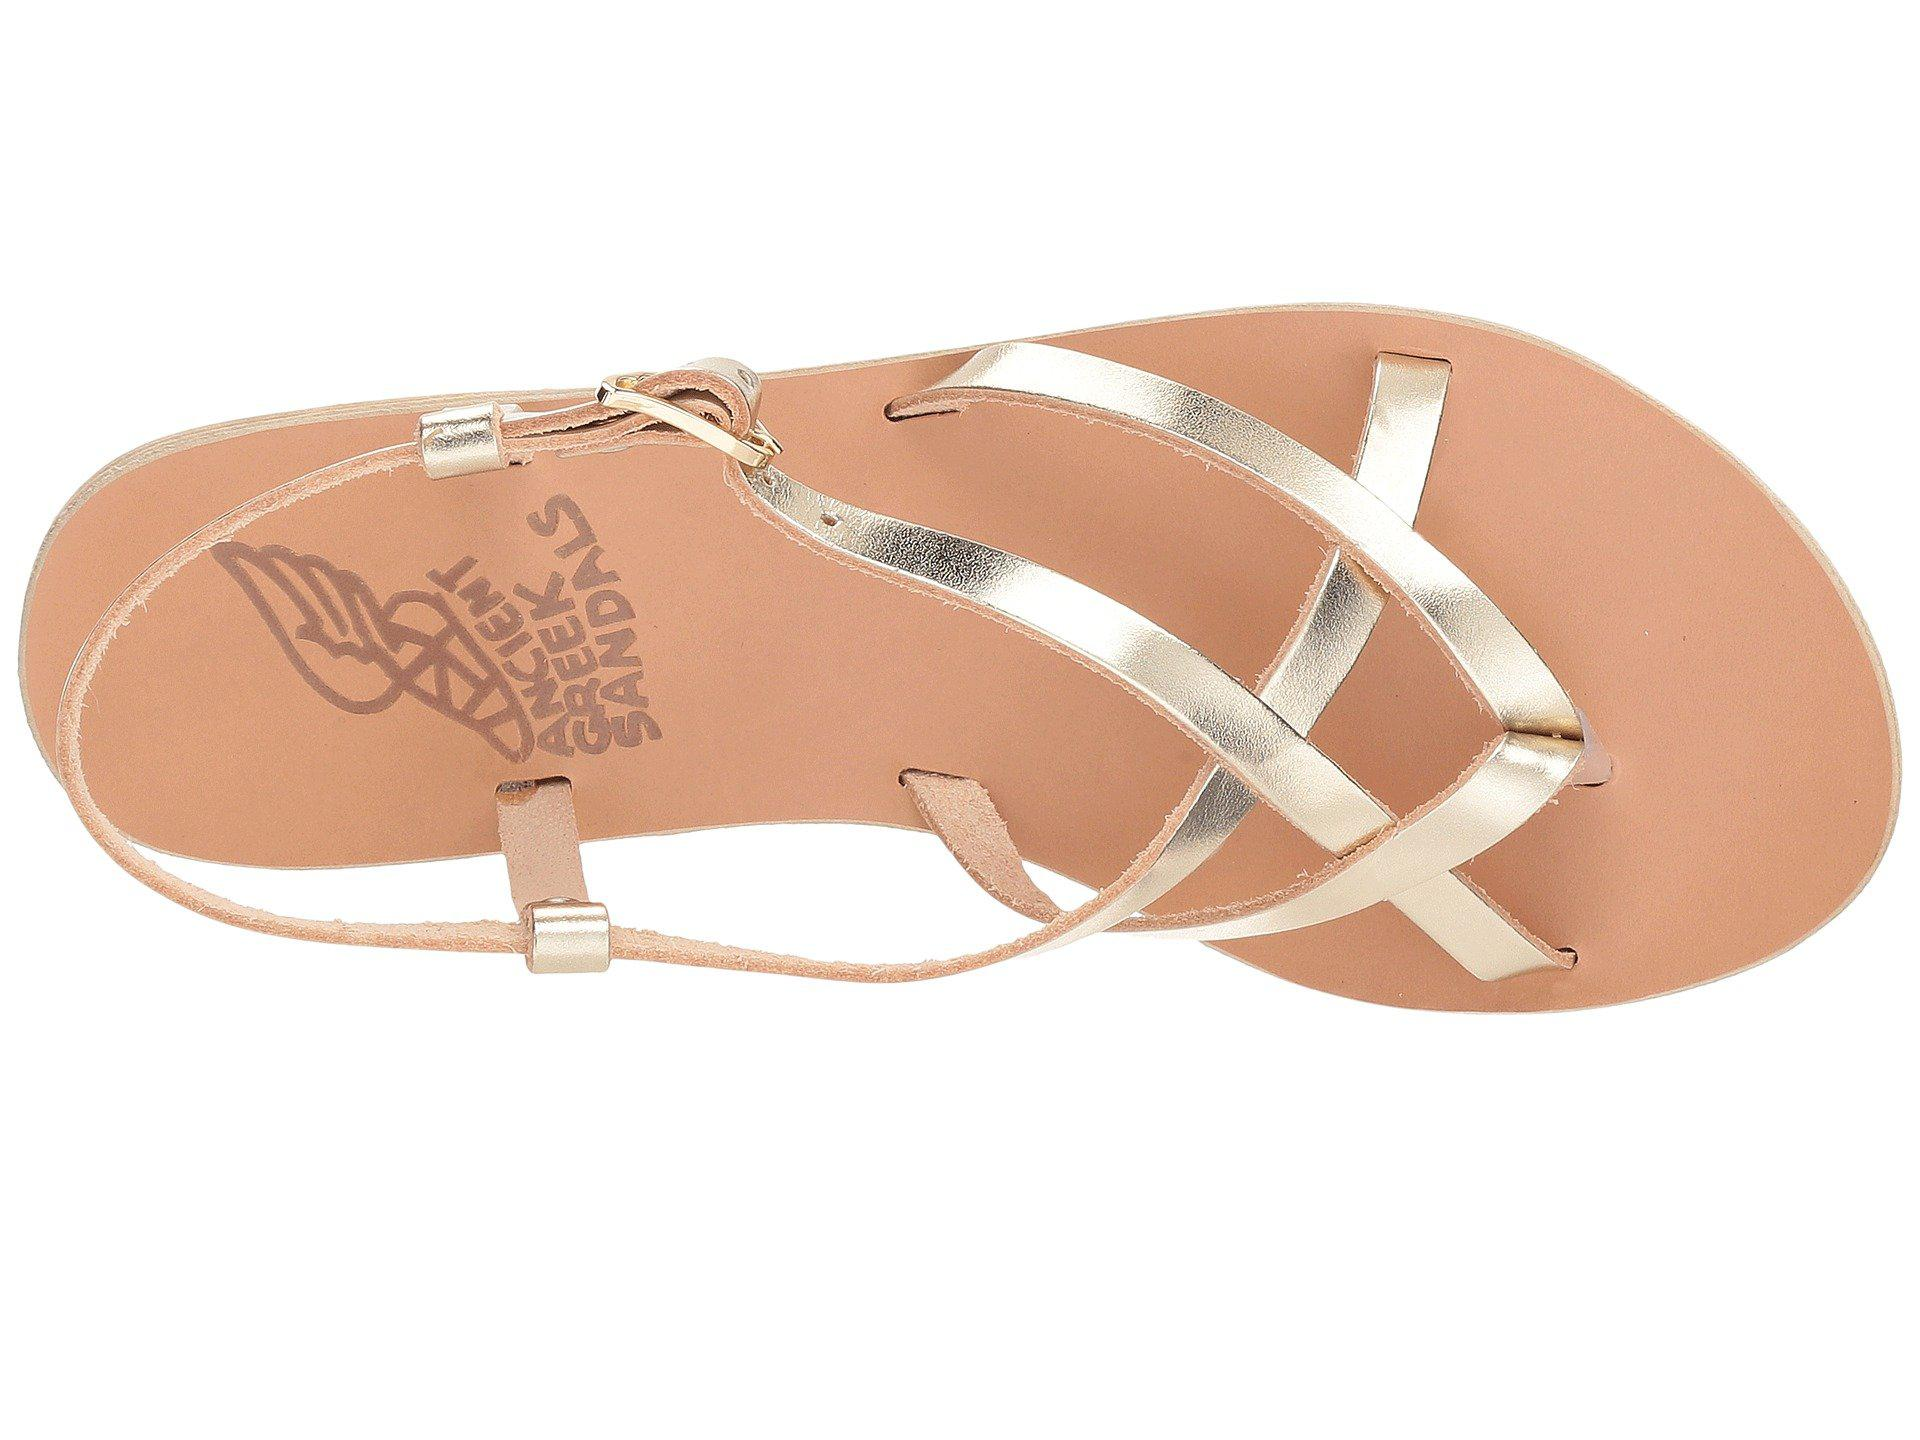 1213dc472 Ancient Greek Sandals - Multicolor Semele (platinum Vachetta) Women's  Sandals - Lyst. View fullscreen